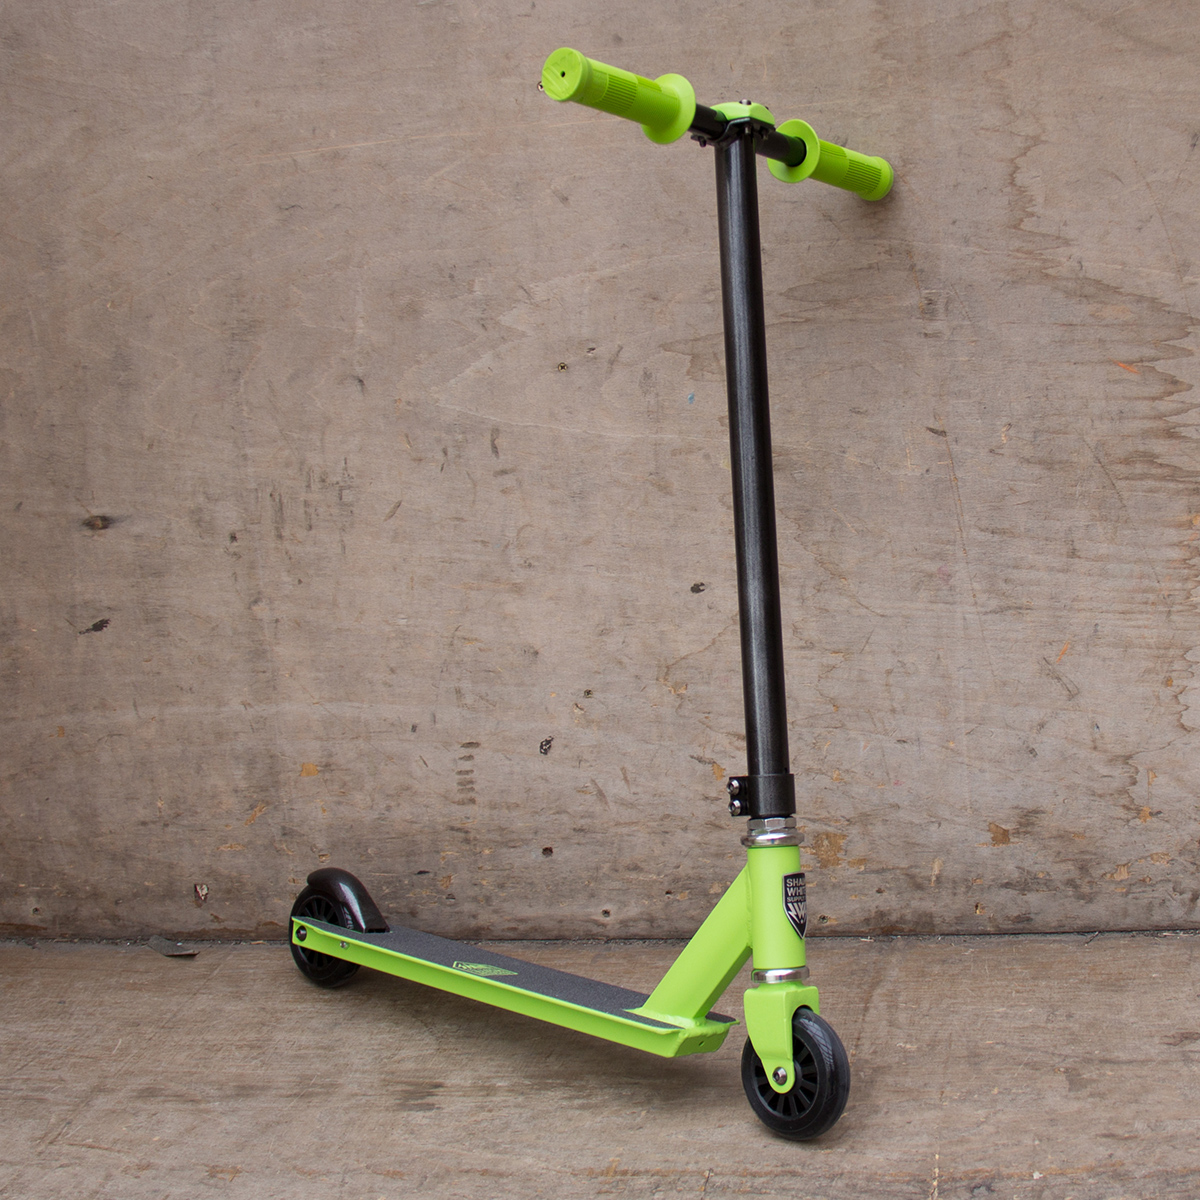 1000  images about Scooters on Pinterest | Bikes, Scooter bike and ...